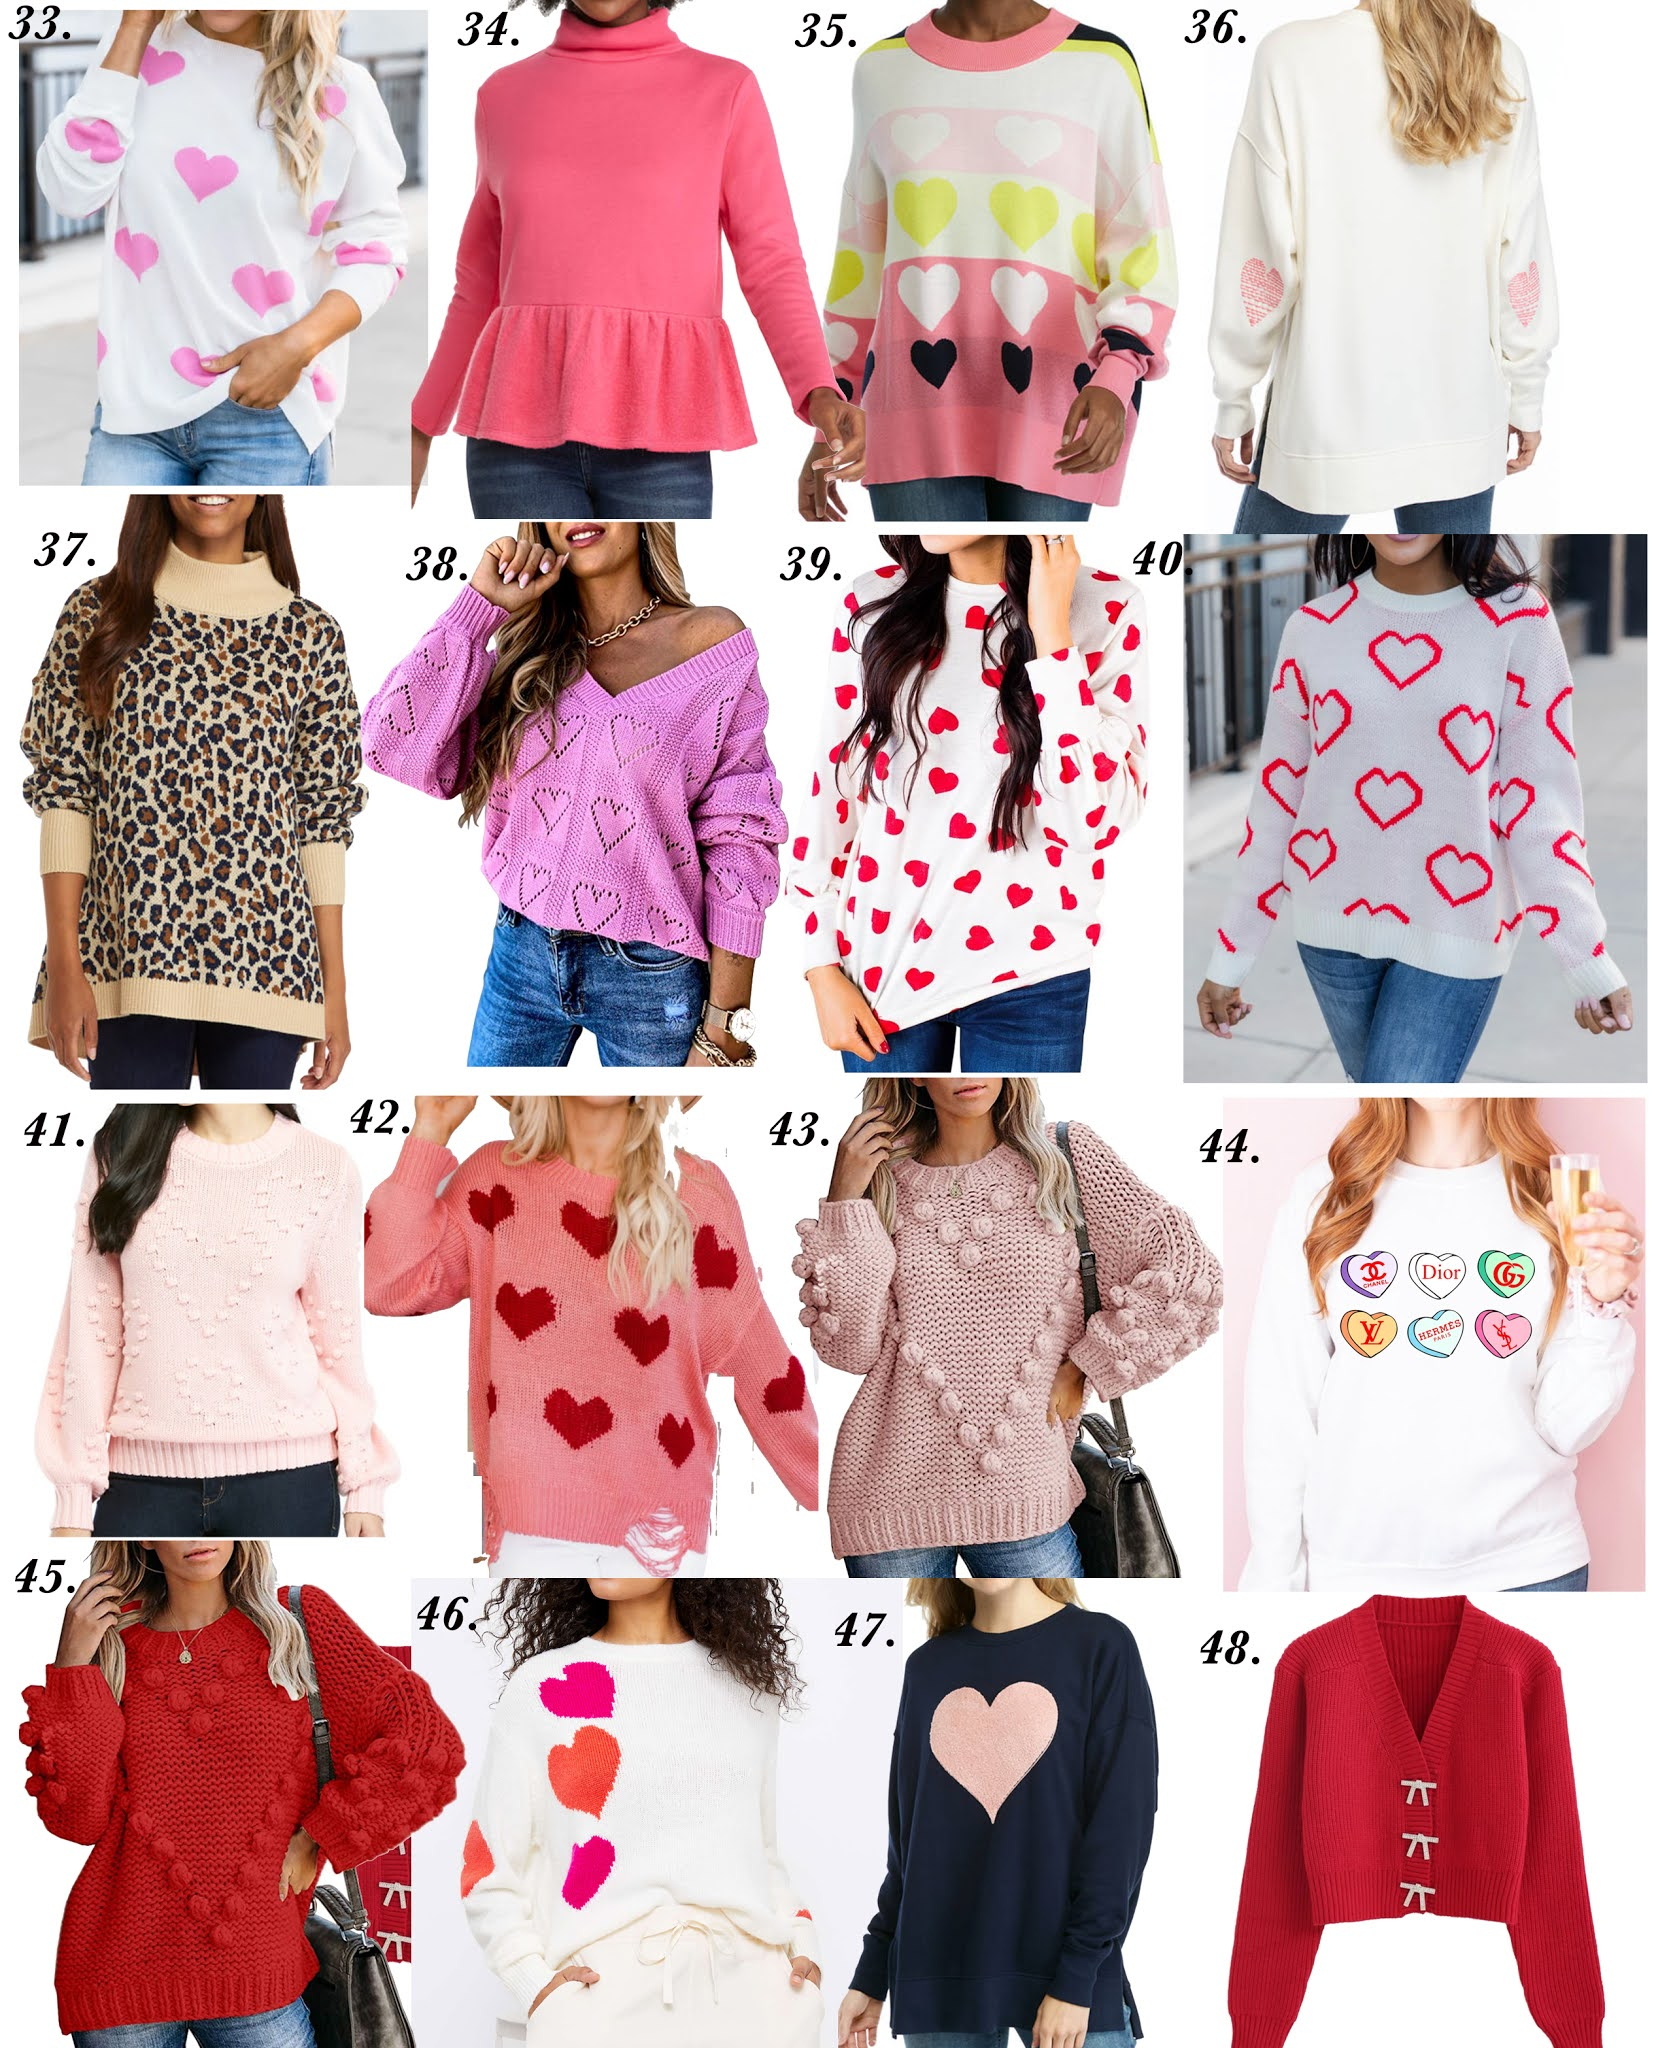 Forty-Eight Valentine Sweaters (all under $100) - Valentine Outfit Inspiration for Adults and Kids: Something Delightful Blog #ValentinesDay #HeartSweaters #ValentinesDayInspo #ValentinesDaySweaters #Pink #Affordable Fashion